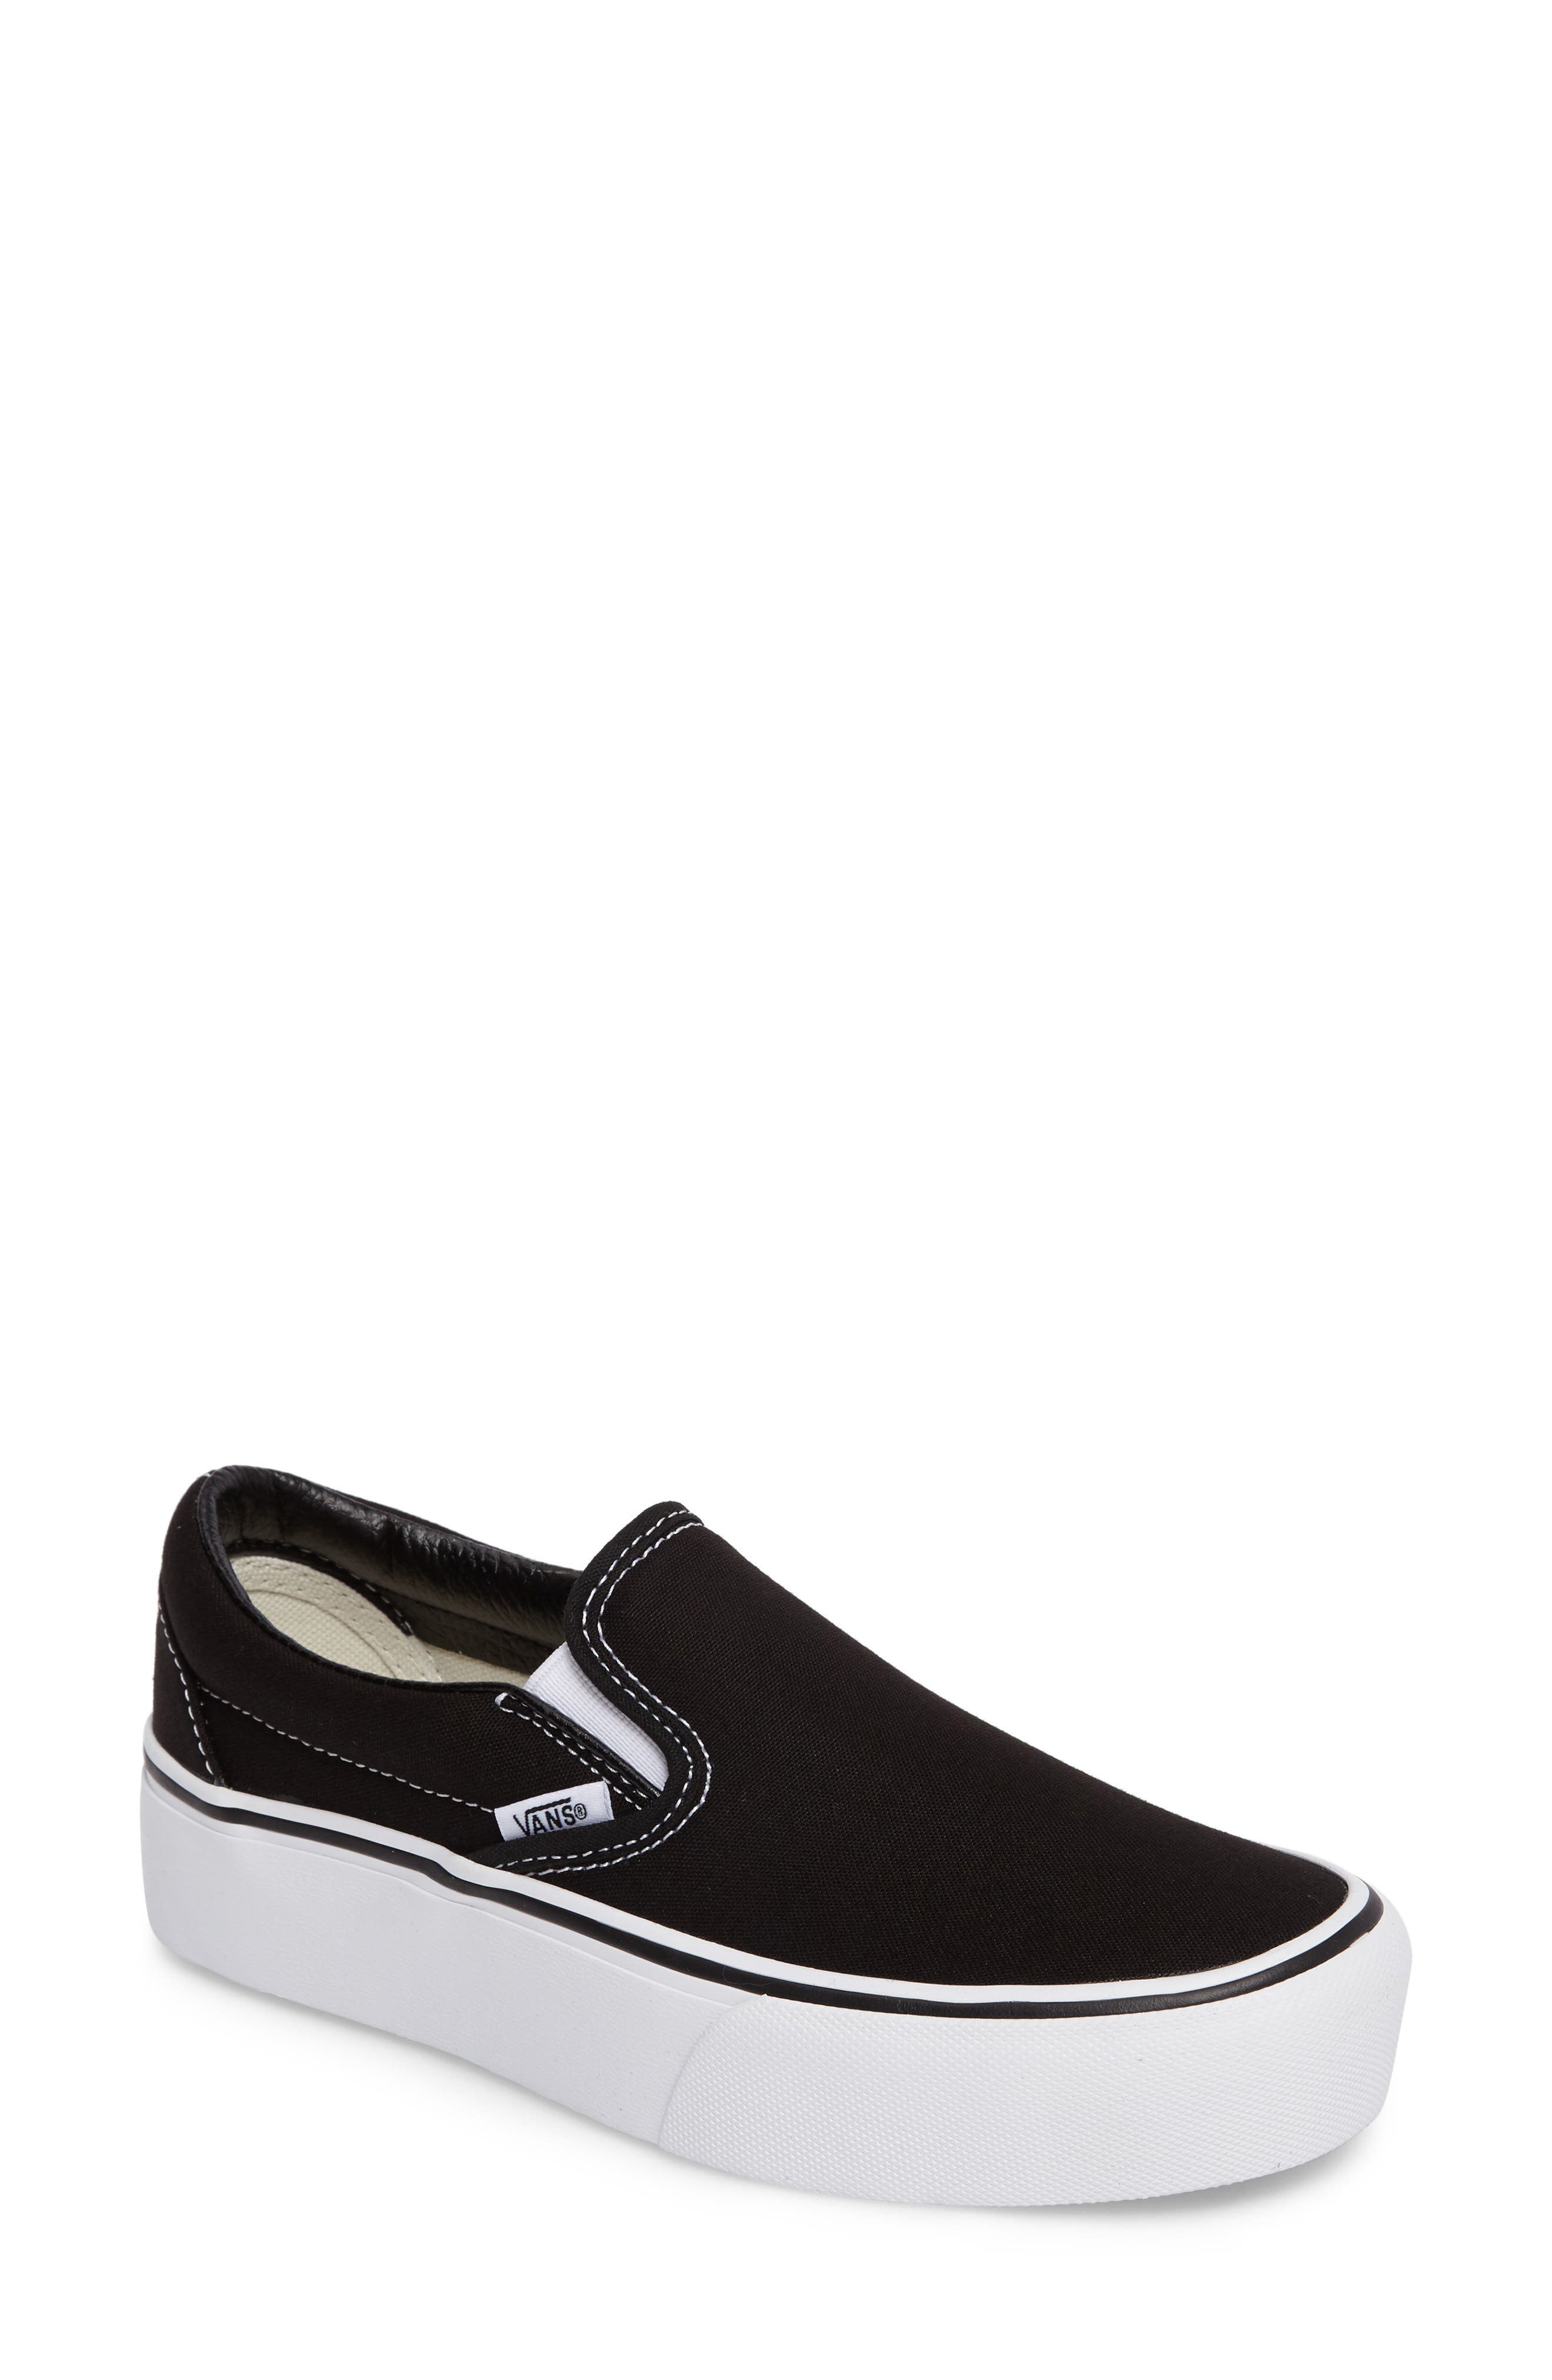 ,                             Platform Slip-On Sneaker,                             Main thumbnail 1, color,                             BLACK/ WHITE